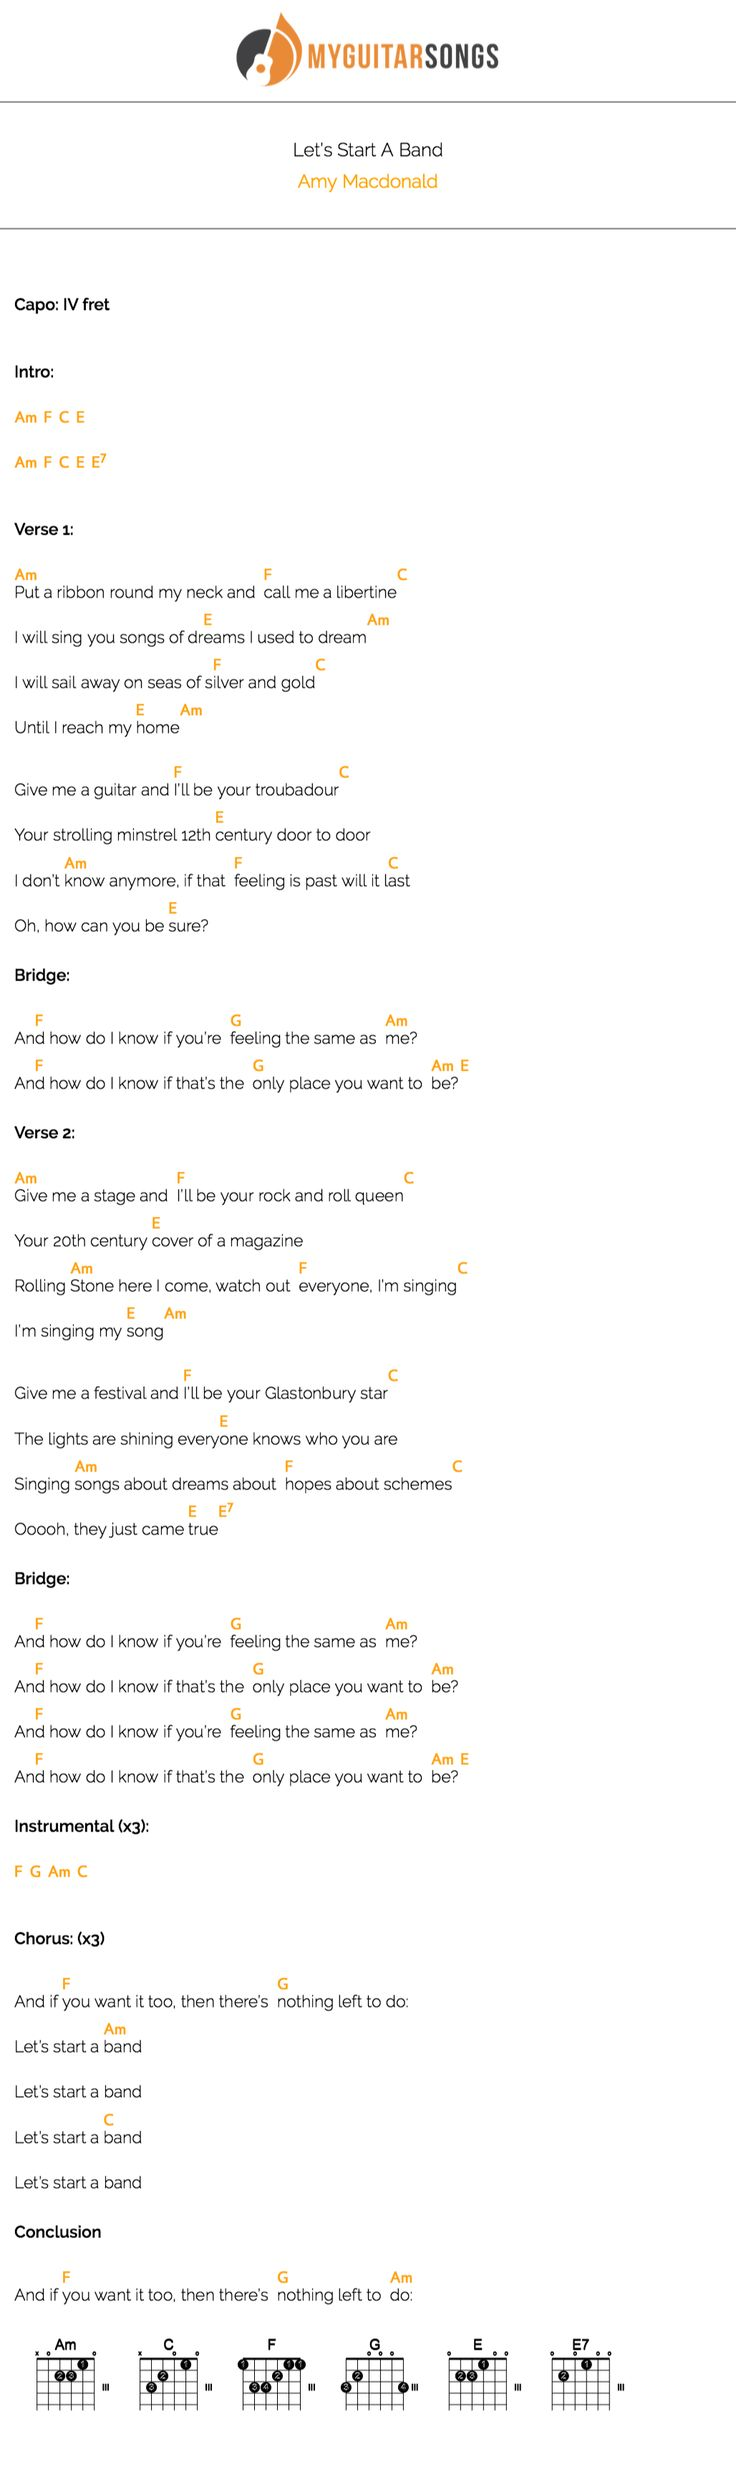 52 best my guitar songs images on pinterest guitars mike d start strumming some chords of its lets start a band by amy macdonald create your own beautiful pdf songbook with a simple and free online tool hexwebz Gallery